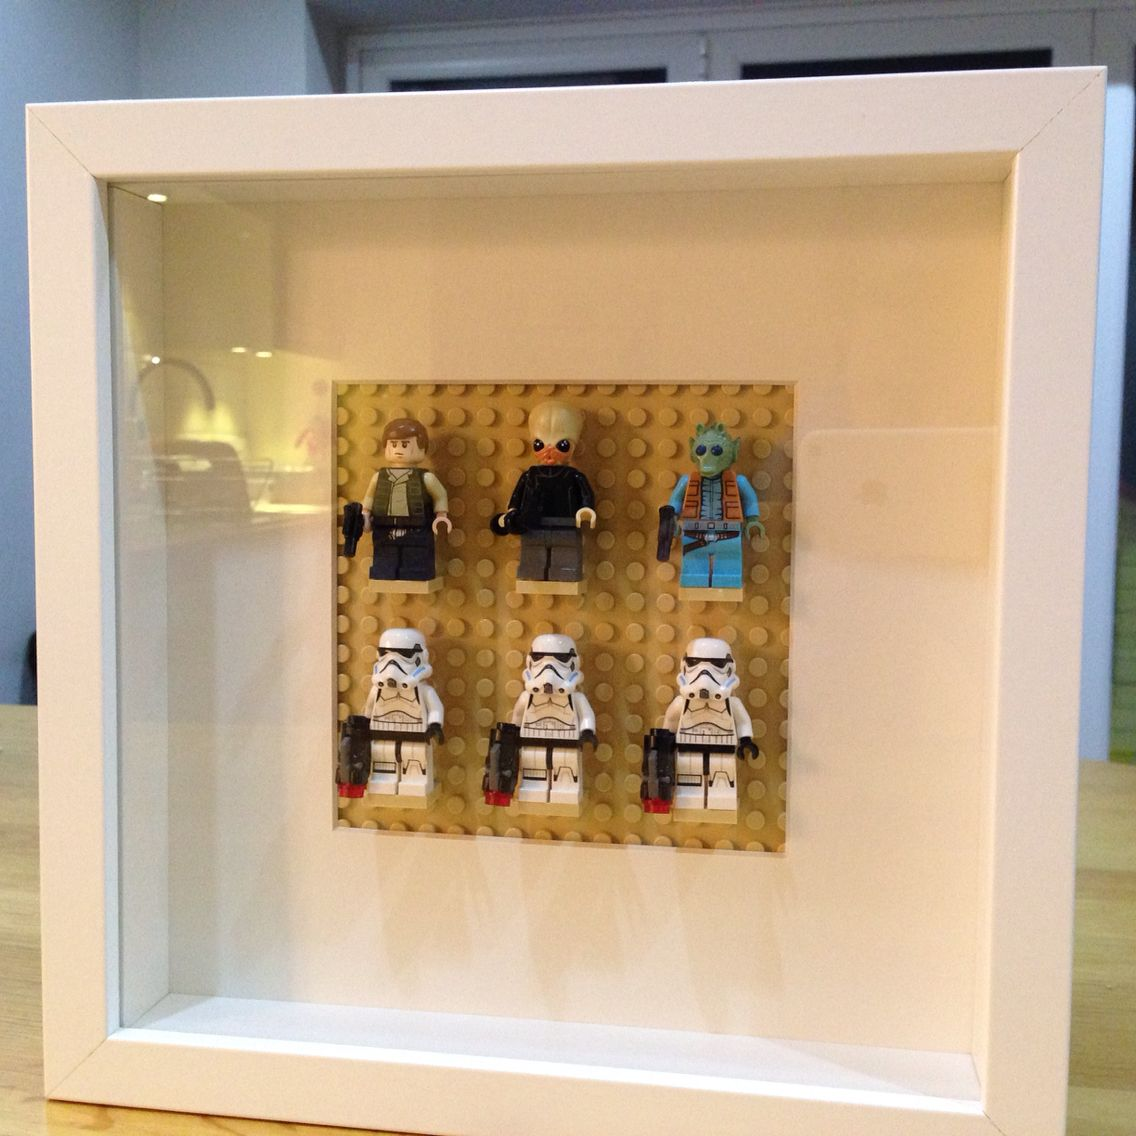 Lego star wars cantina art using ikea ribba picture frame crafts lego star wars cantina art using ikea ribba picture frame jeuxipadfo Images